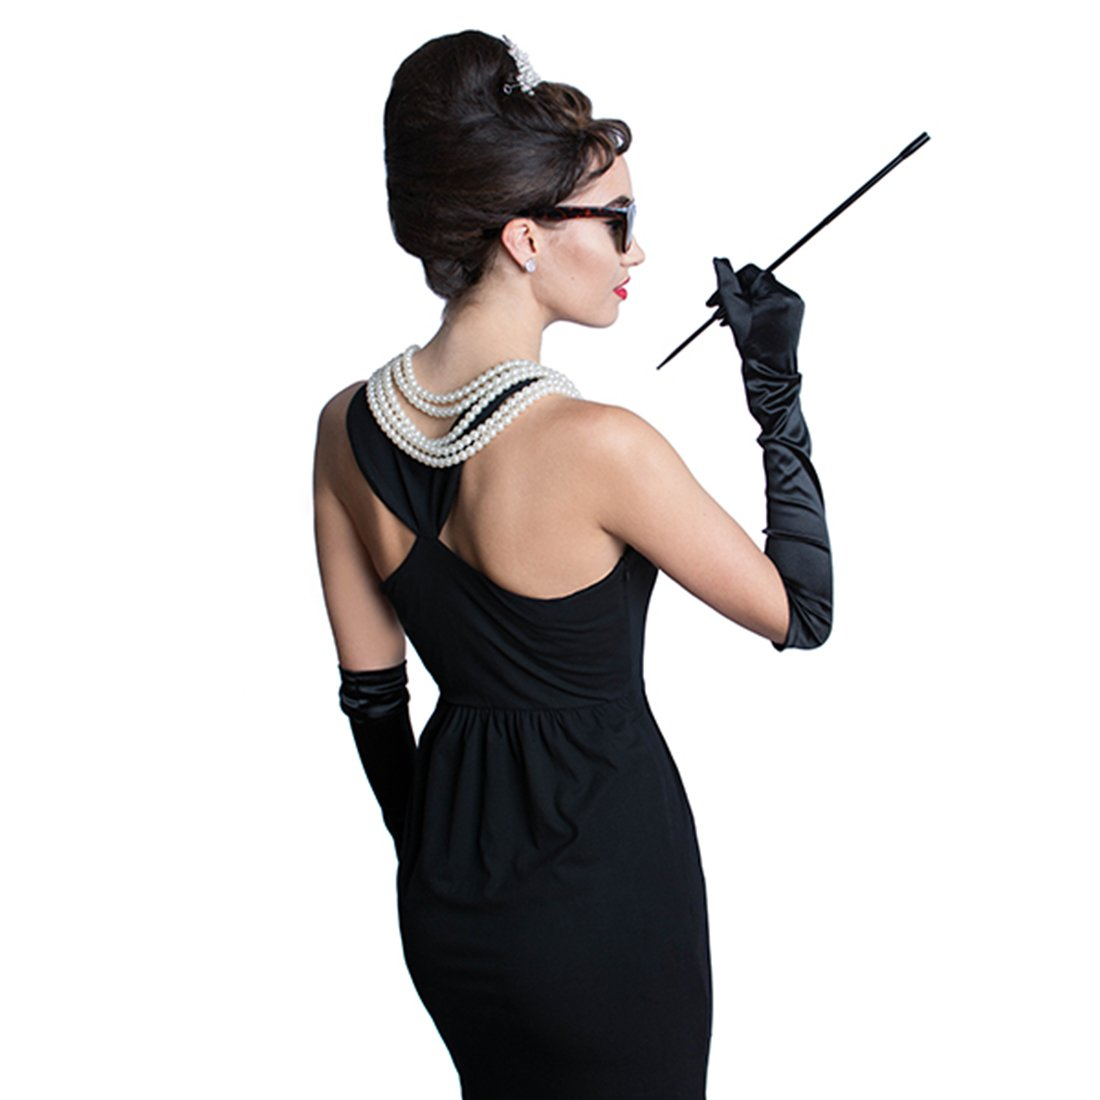 Audrey Hepburn - the Original ''Breakfast at Tiffany's'' Complete Costume Set (L) w/Gift Box by Utopiat (Image #3)